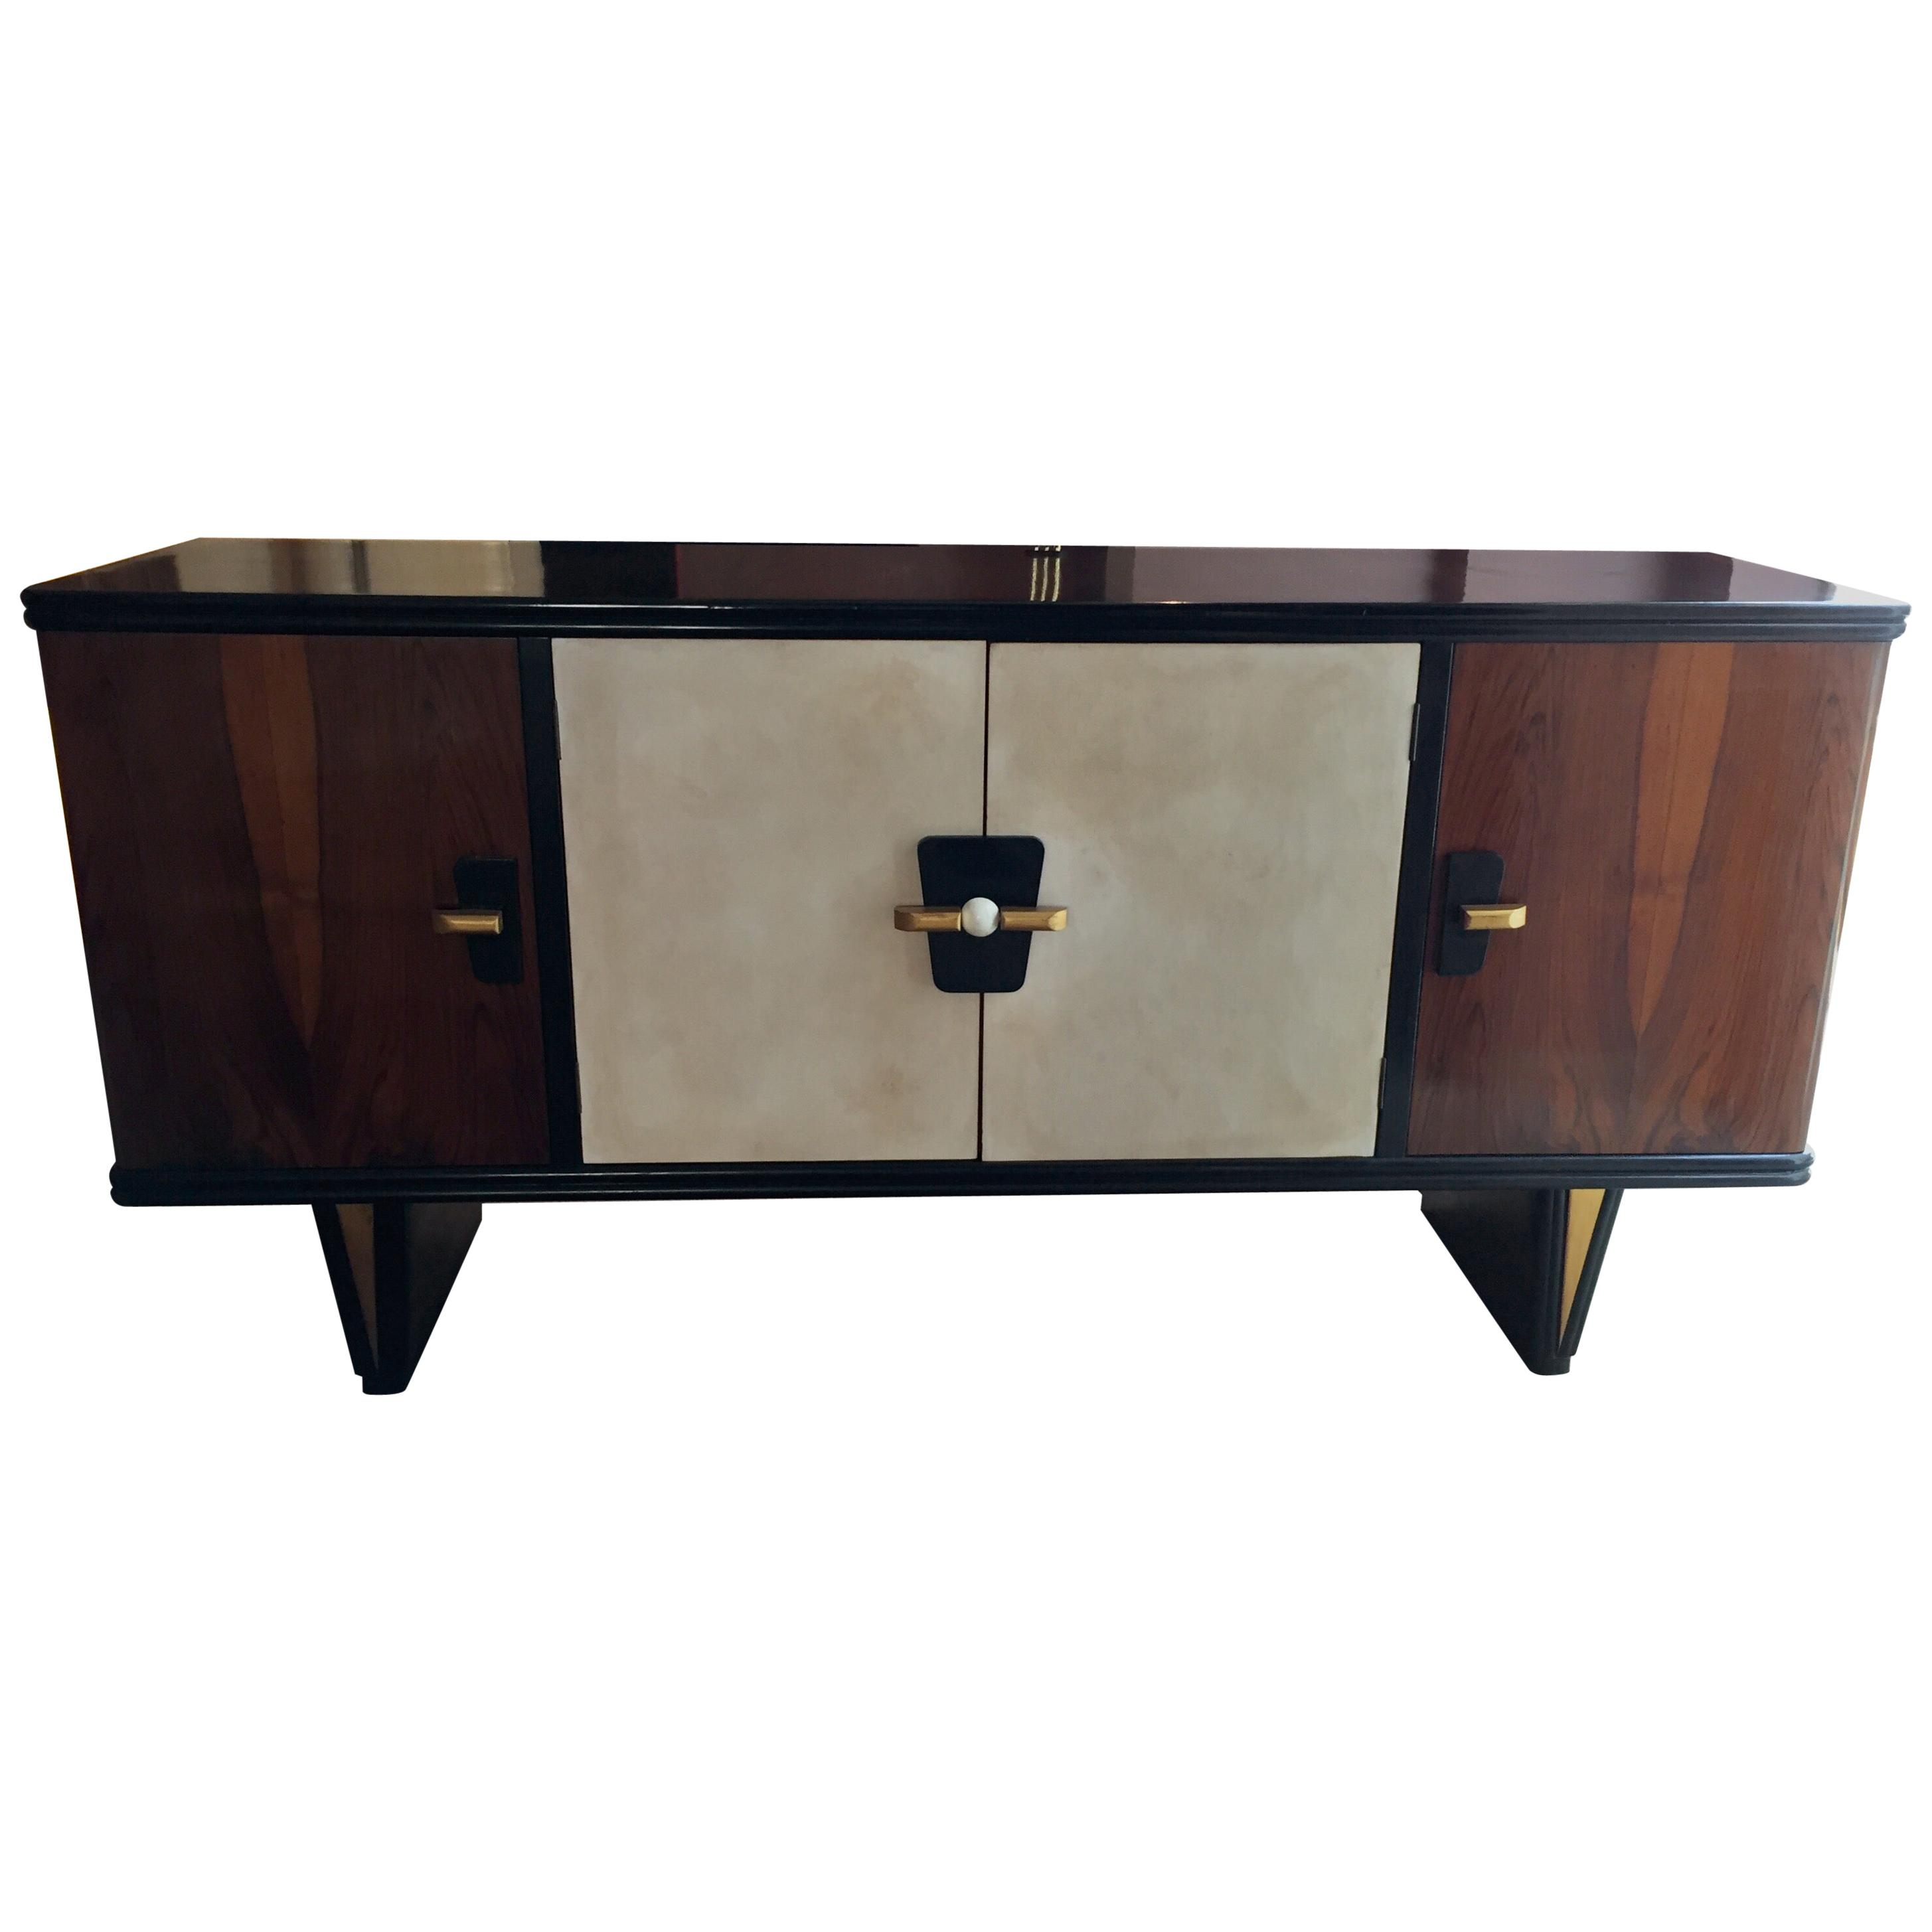 Antique And Vintage Buffets – 2,700 For Sale At 1Stdibs Regarding Contemporary Style Wooden Buffets With Two Side Door Storage Cabinets (View 2 of 30)